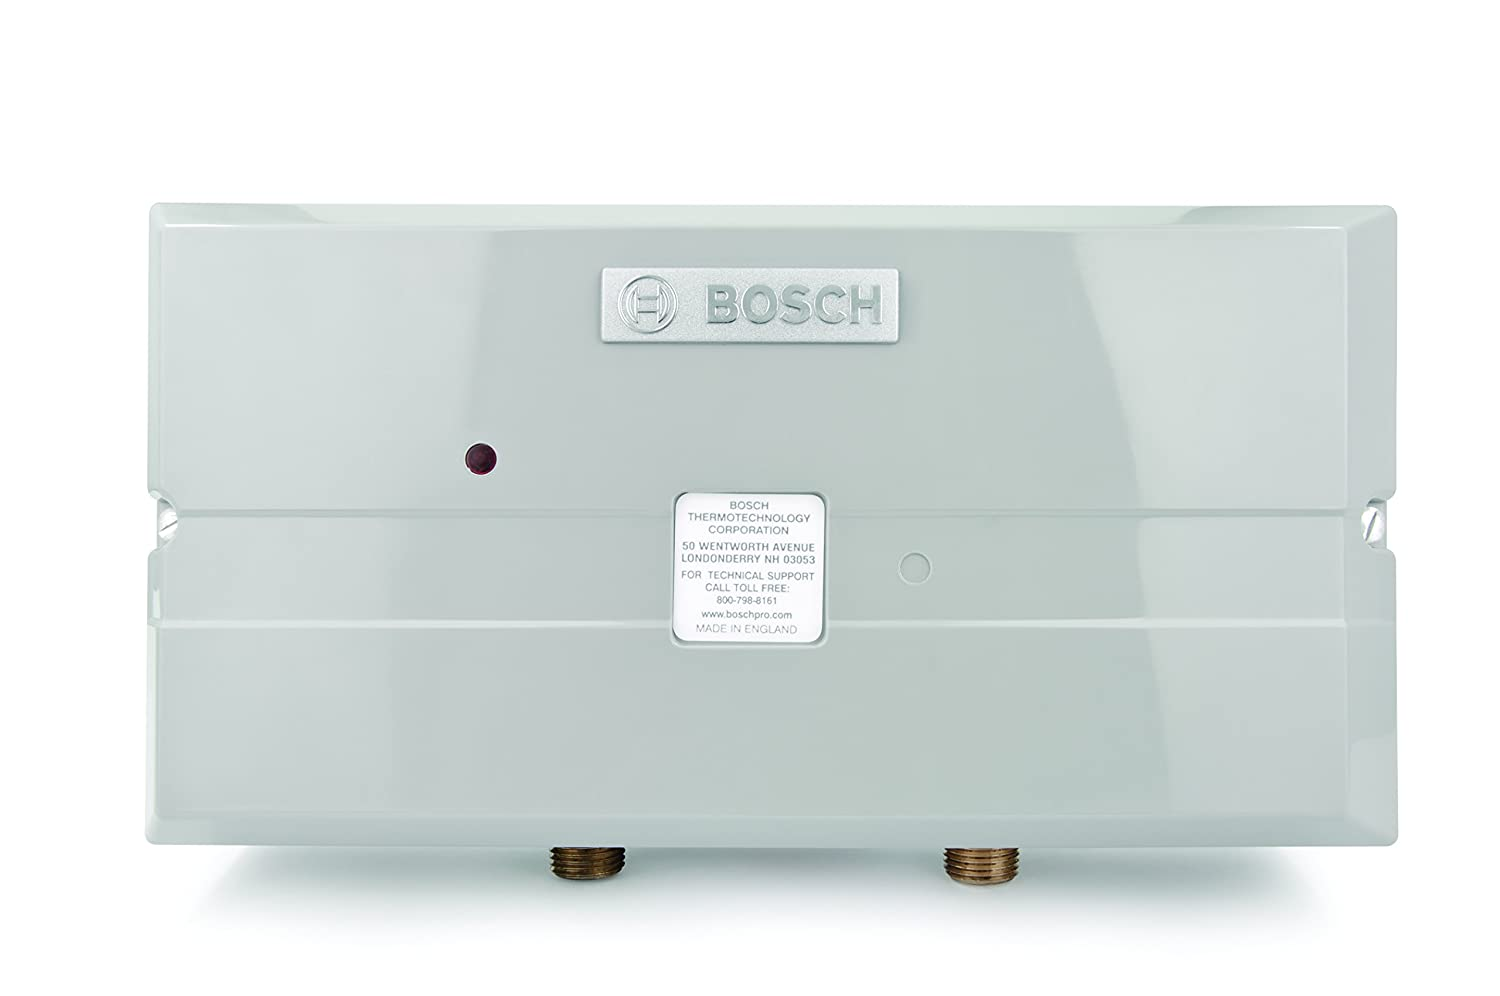 Bosch Electric Tankless Water Heater - Eliminate Time for Hot Water - Easy Installation